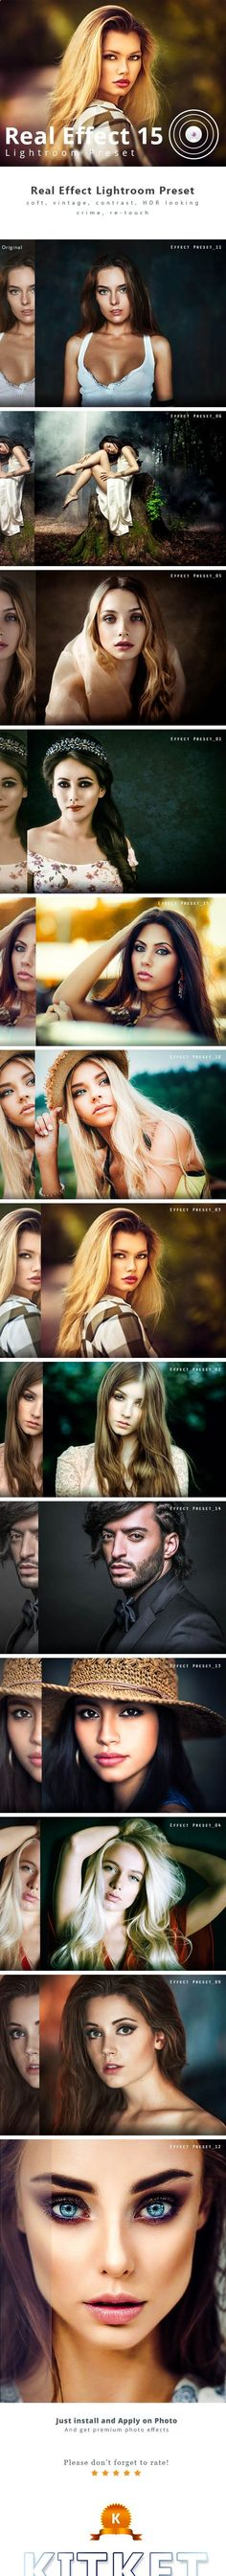 Real Effect 15 Photography Lightroom Preset — LRTemplate #photographer #portrait effect • Available here → graphicriver.net/...